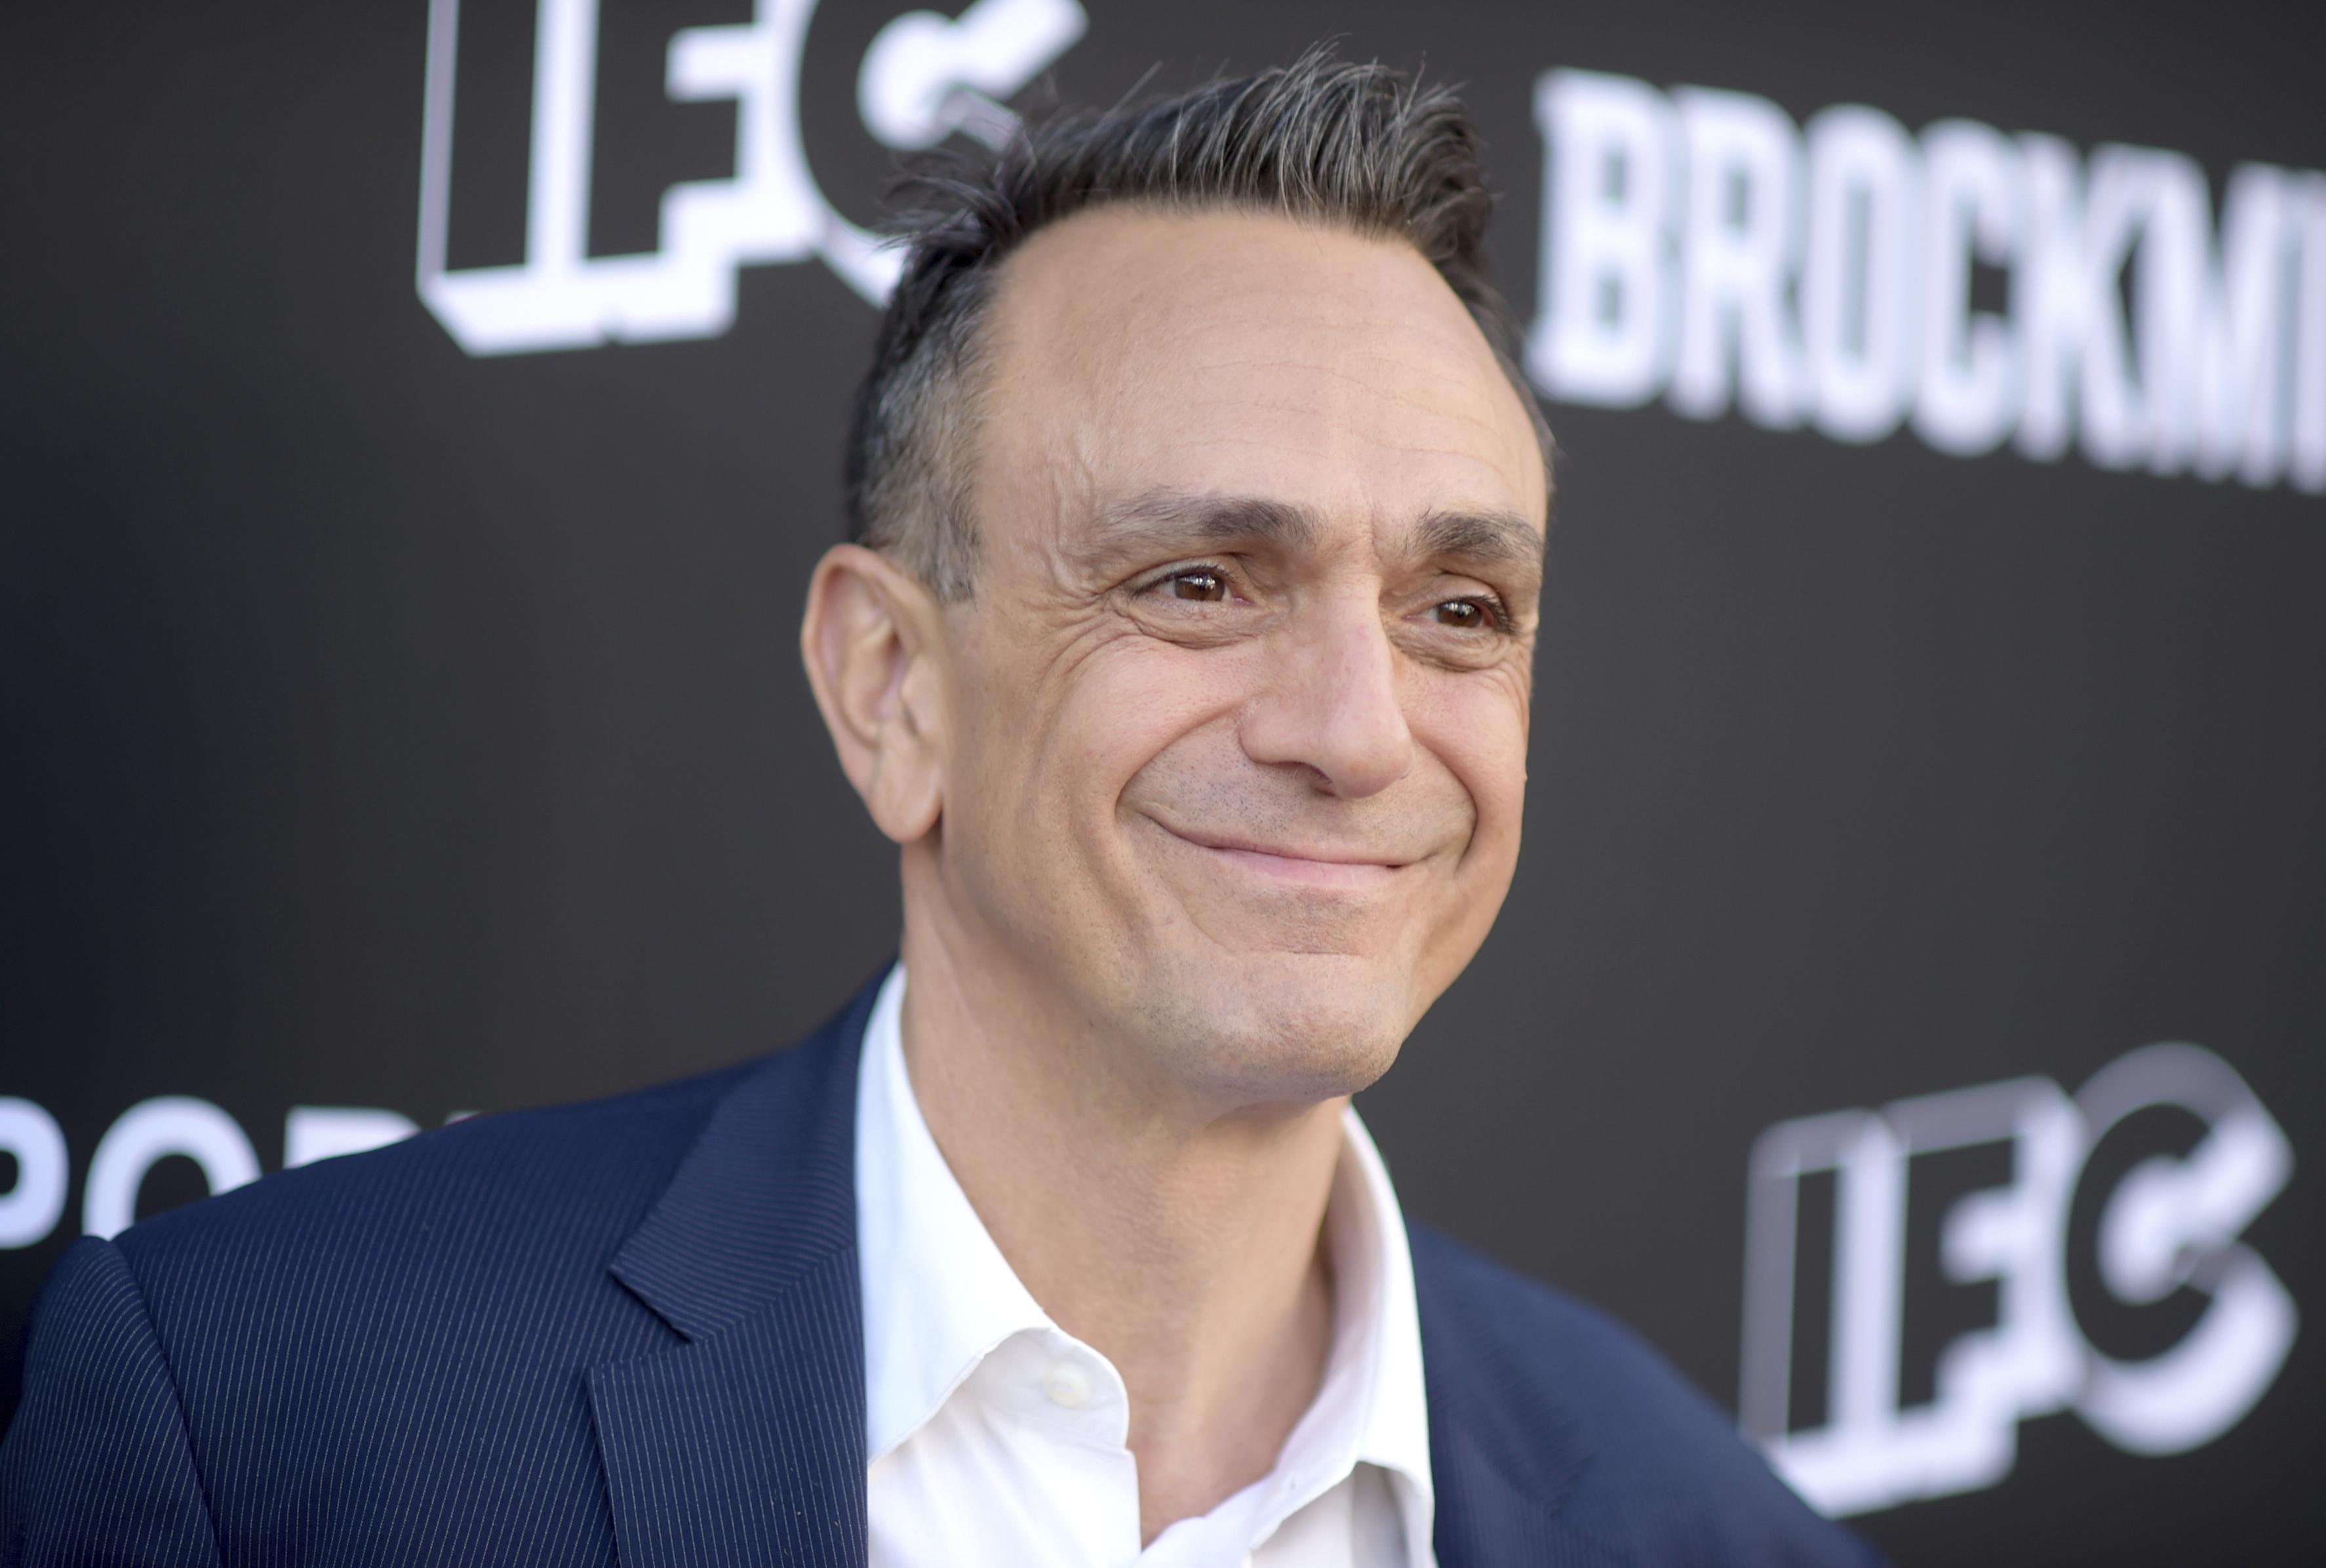 Hank Azaria to end 30-year run as voice of 'Simpsons' character Apu